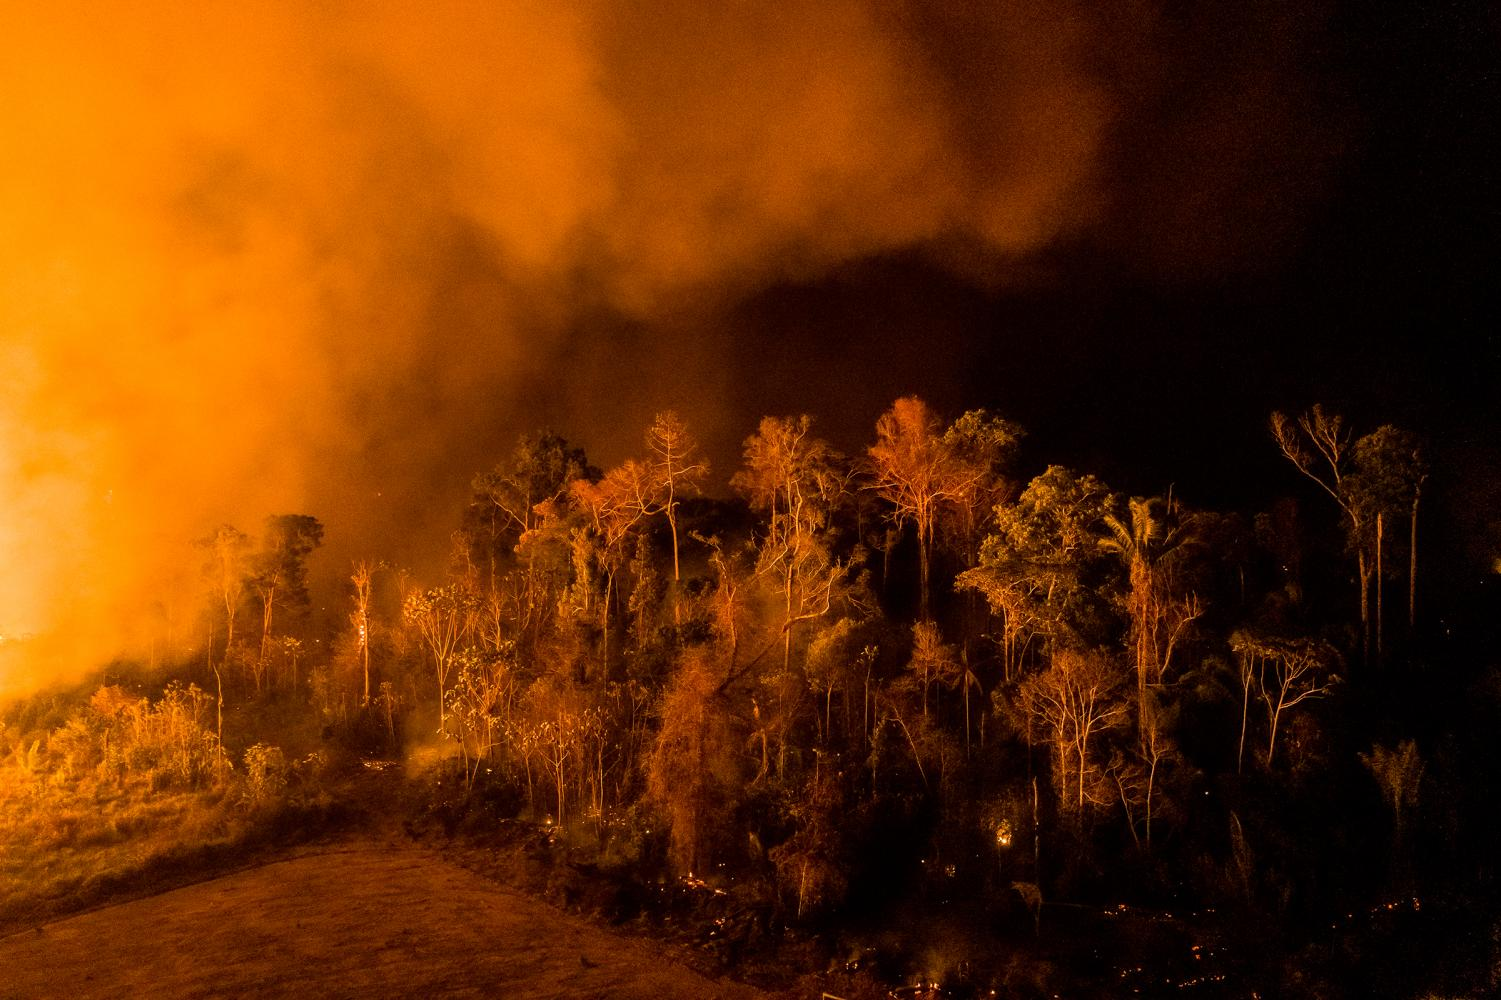 Fires set the Amazon Rainforest ablaze with strong winds. Photo Credit: Sebastián Liste for TIME